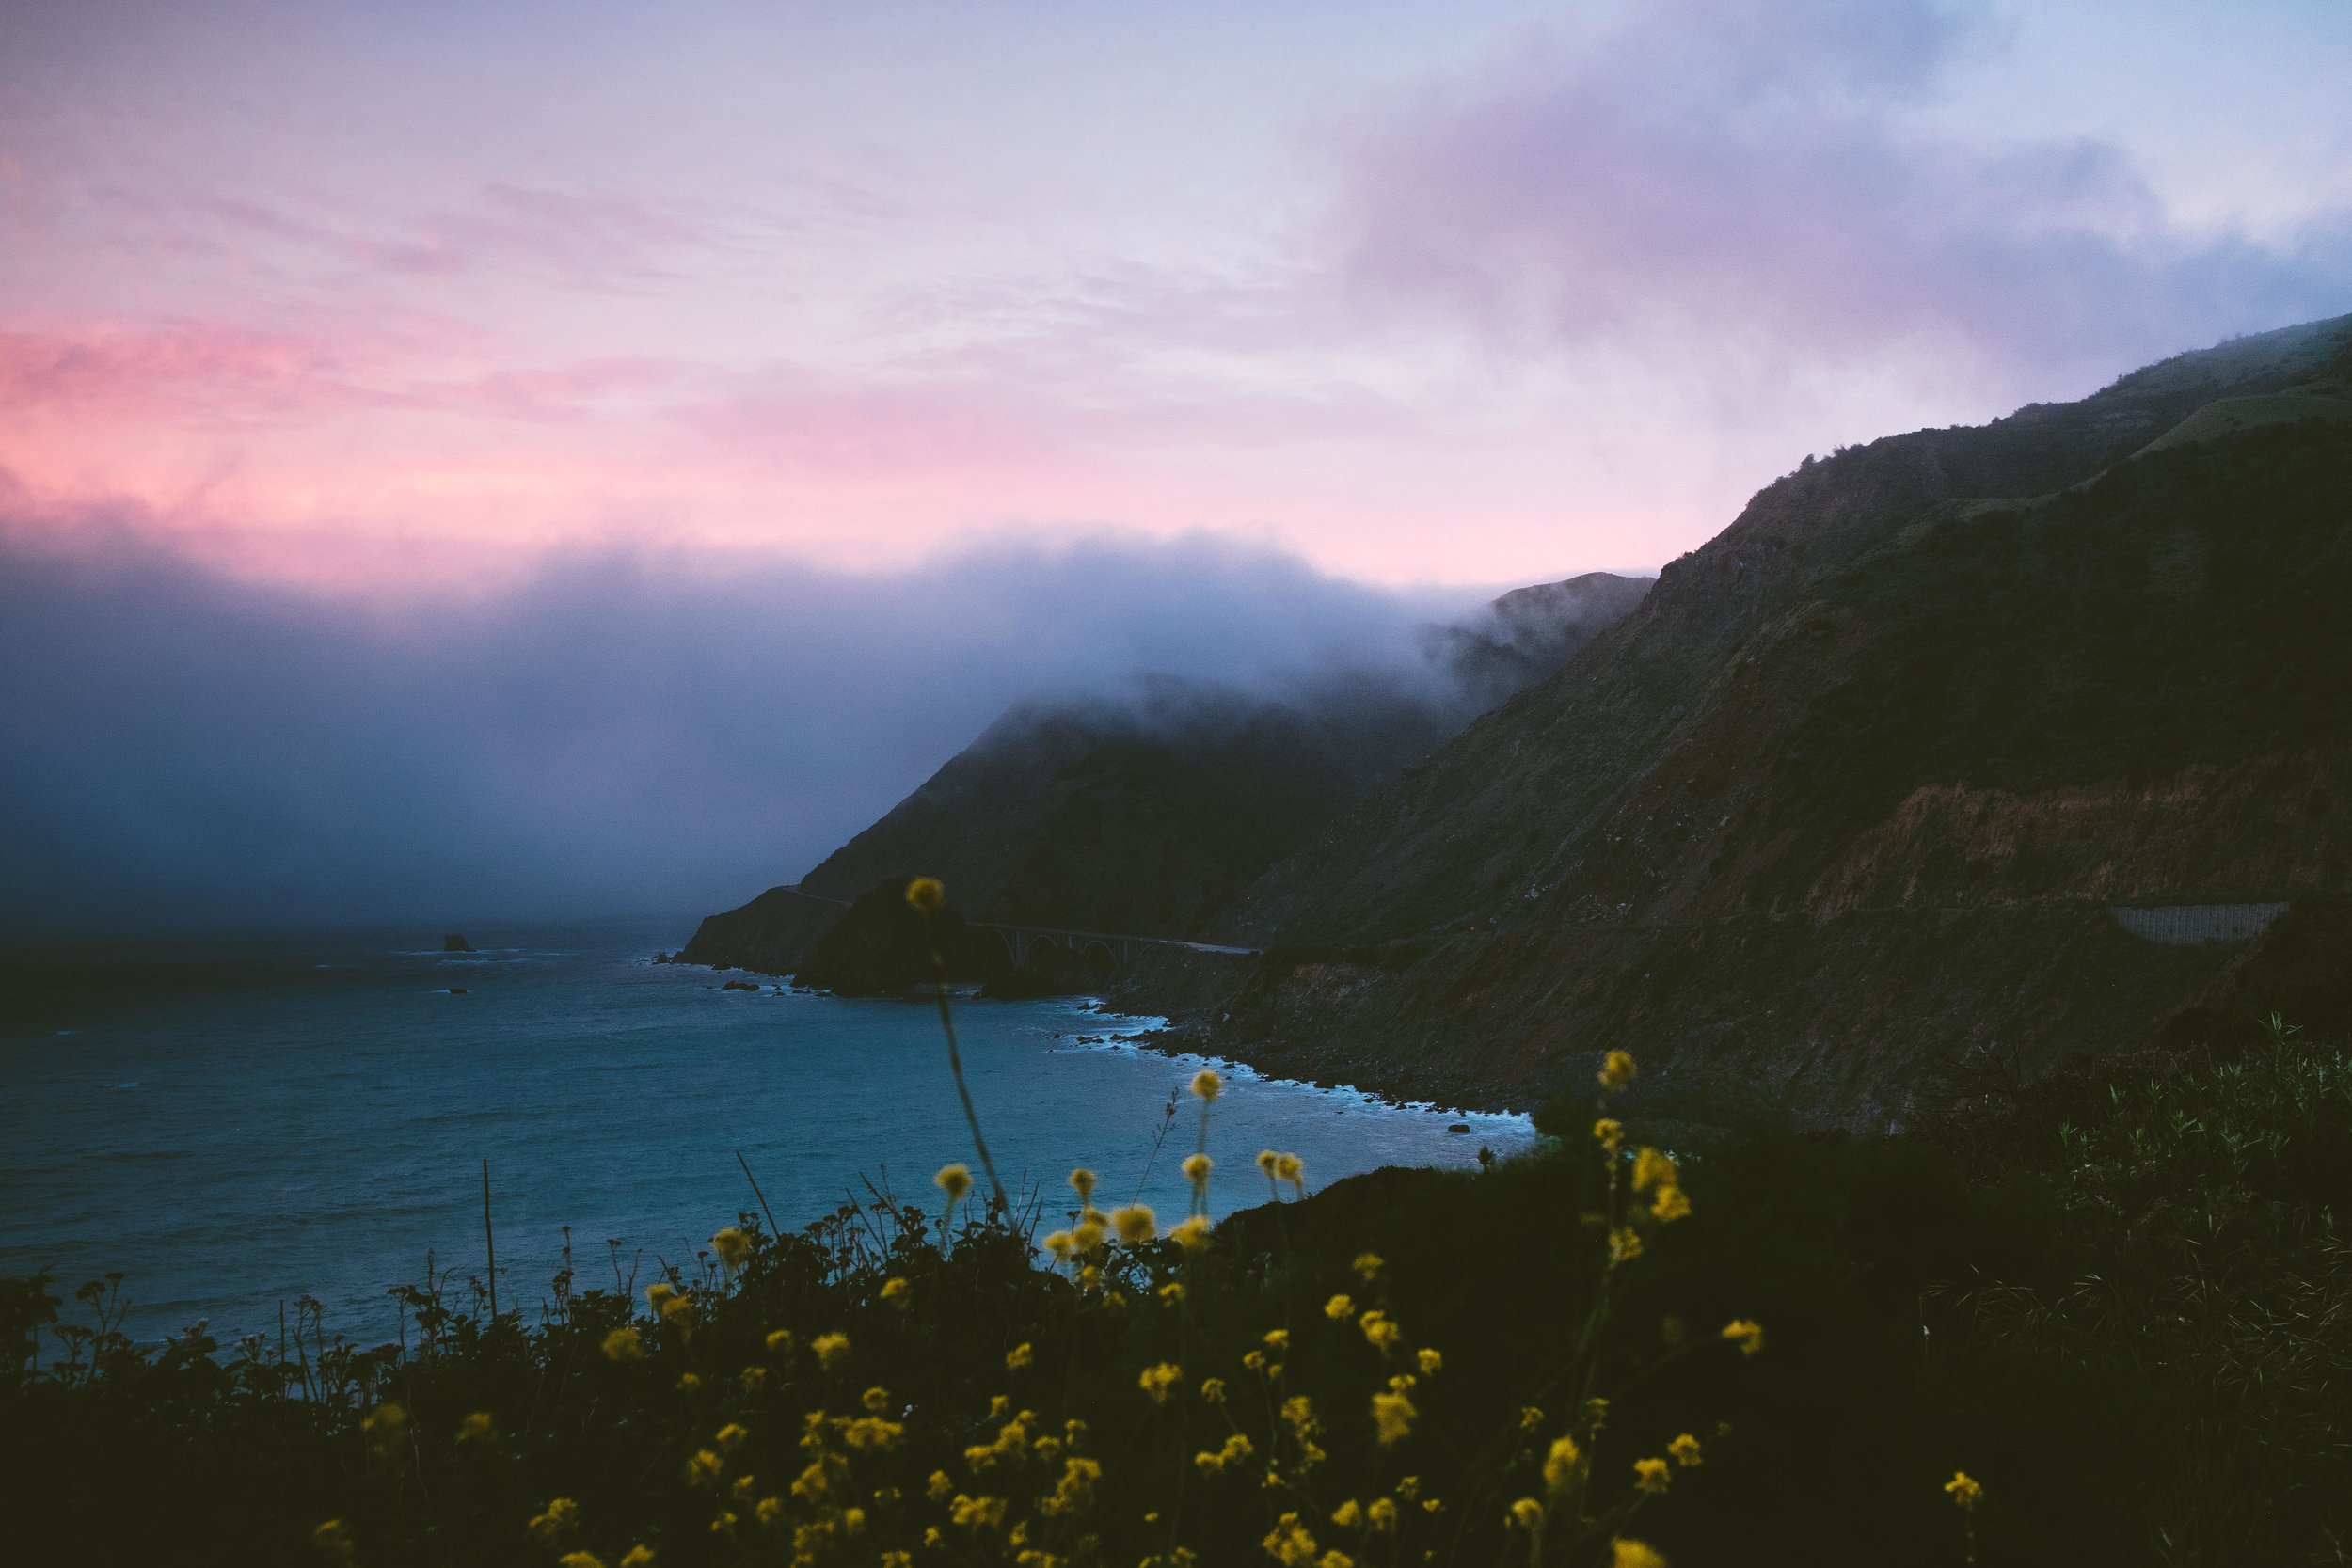 Cookwilltravel - Huckberry - Big Sur > Los Angeles - DSCF7005.jpg